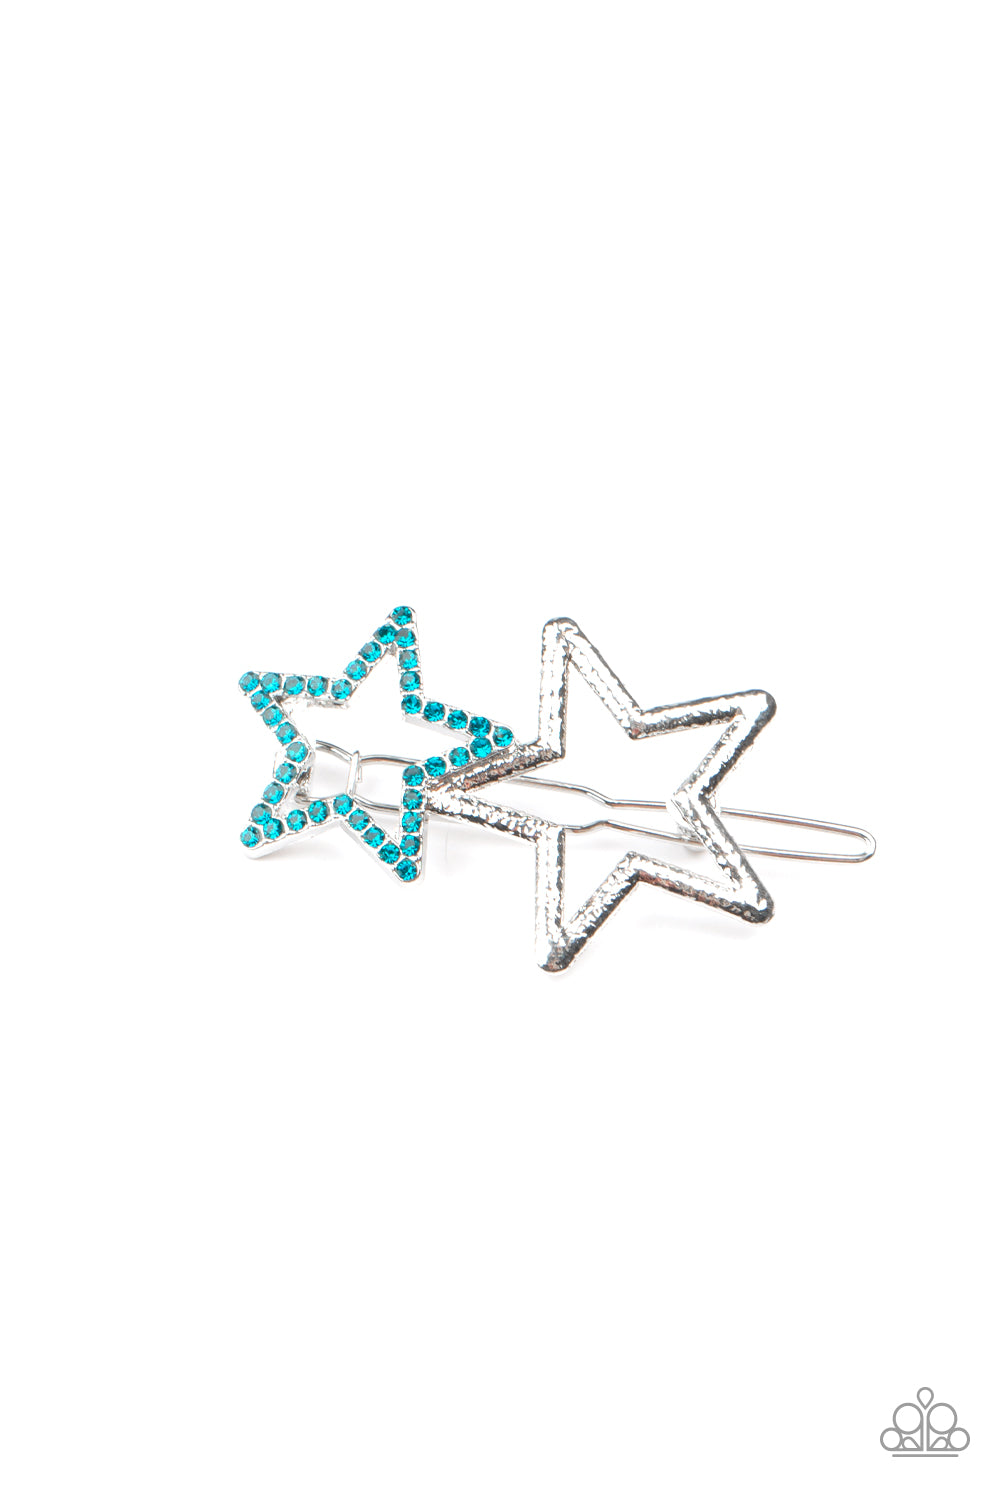 Paparazzi Jewelry & Accessories - Lets Get This Party STAR-ted! - Blue Hair Clip. Bling By Titia Boutique